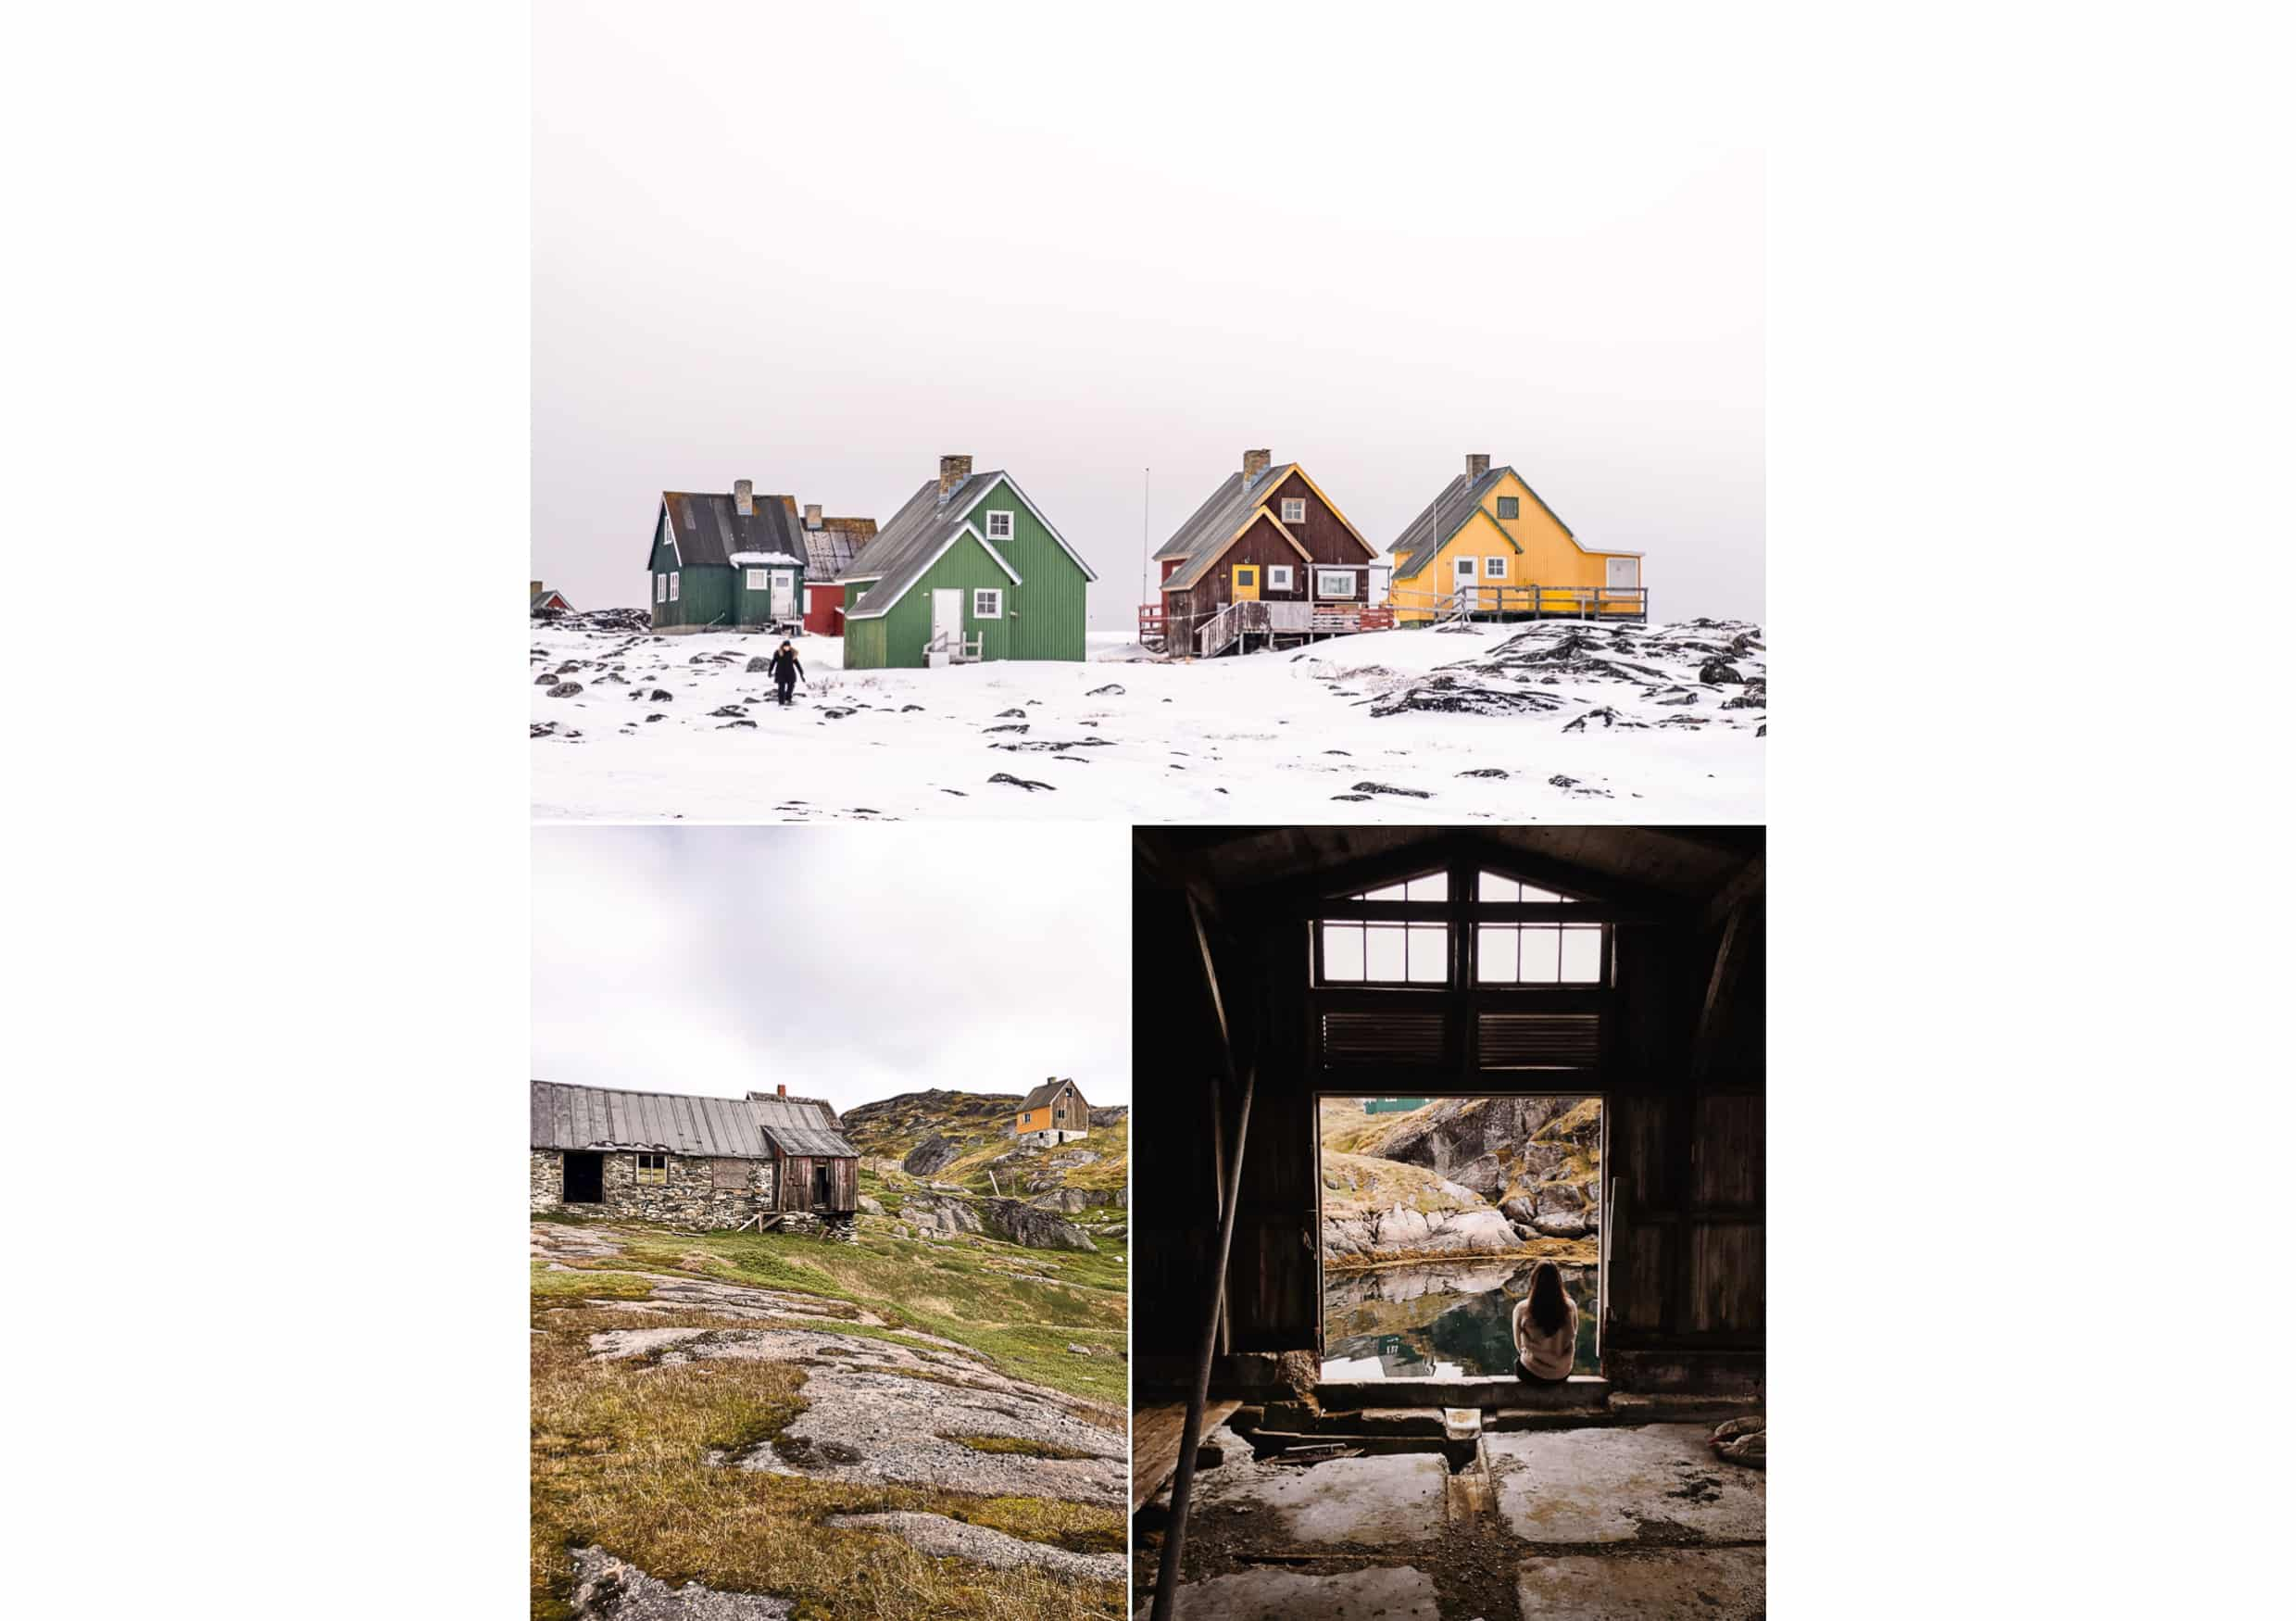 Montage of maintained and derelict houses of Qoornoq (top) and Kangeq (bottom) in the Nuuk Fjord